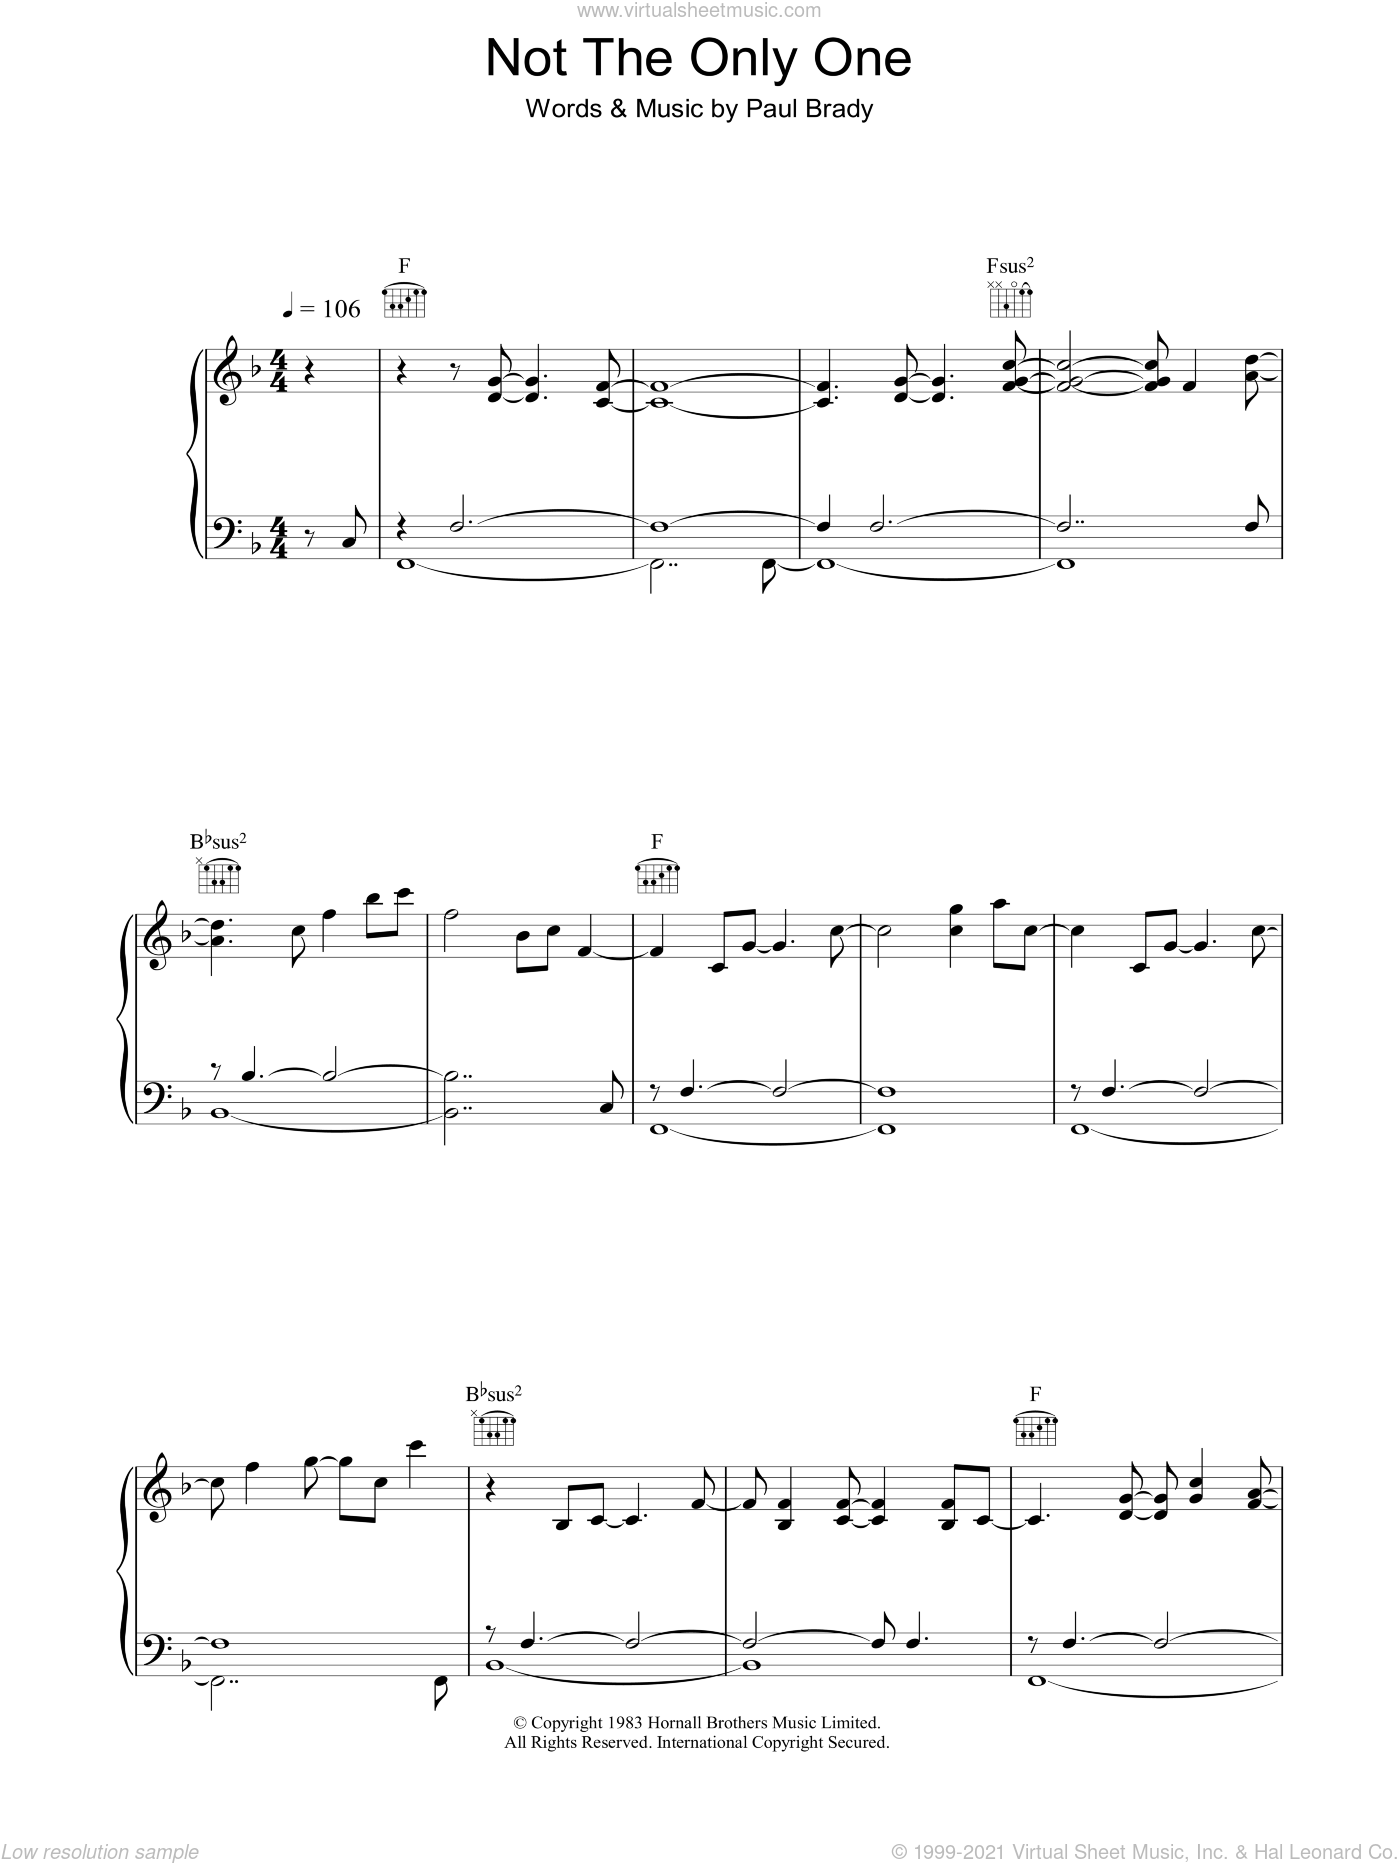 Not The Only One sheet music for voice, piano or guitar by Paul Brady, intermediate skill level